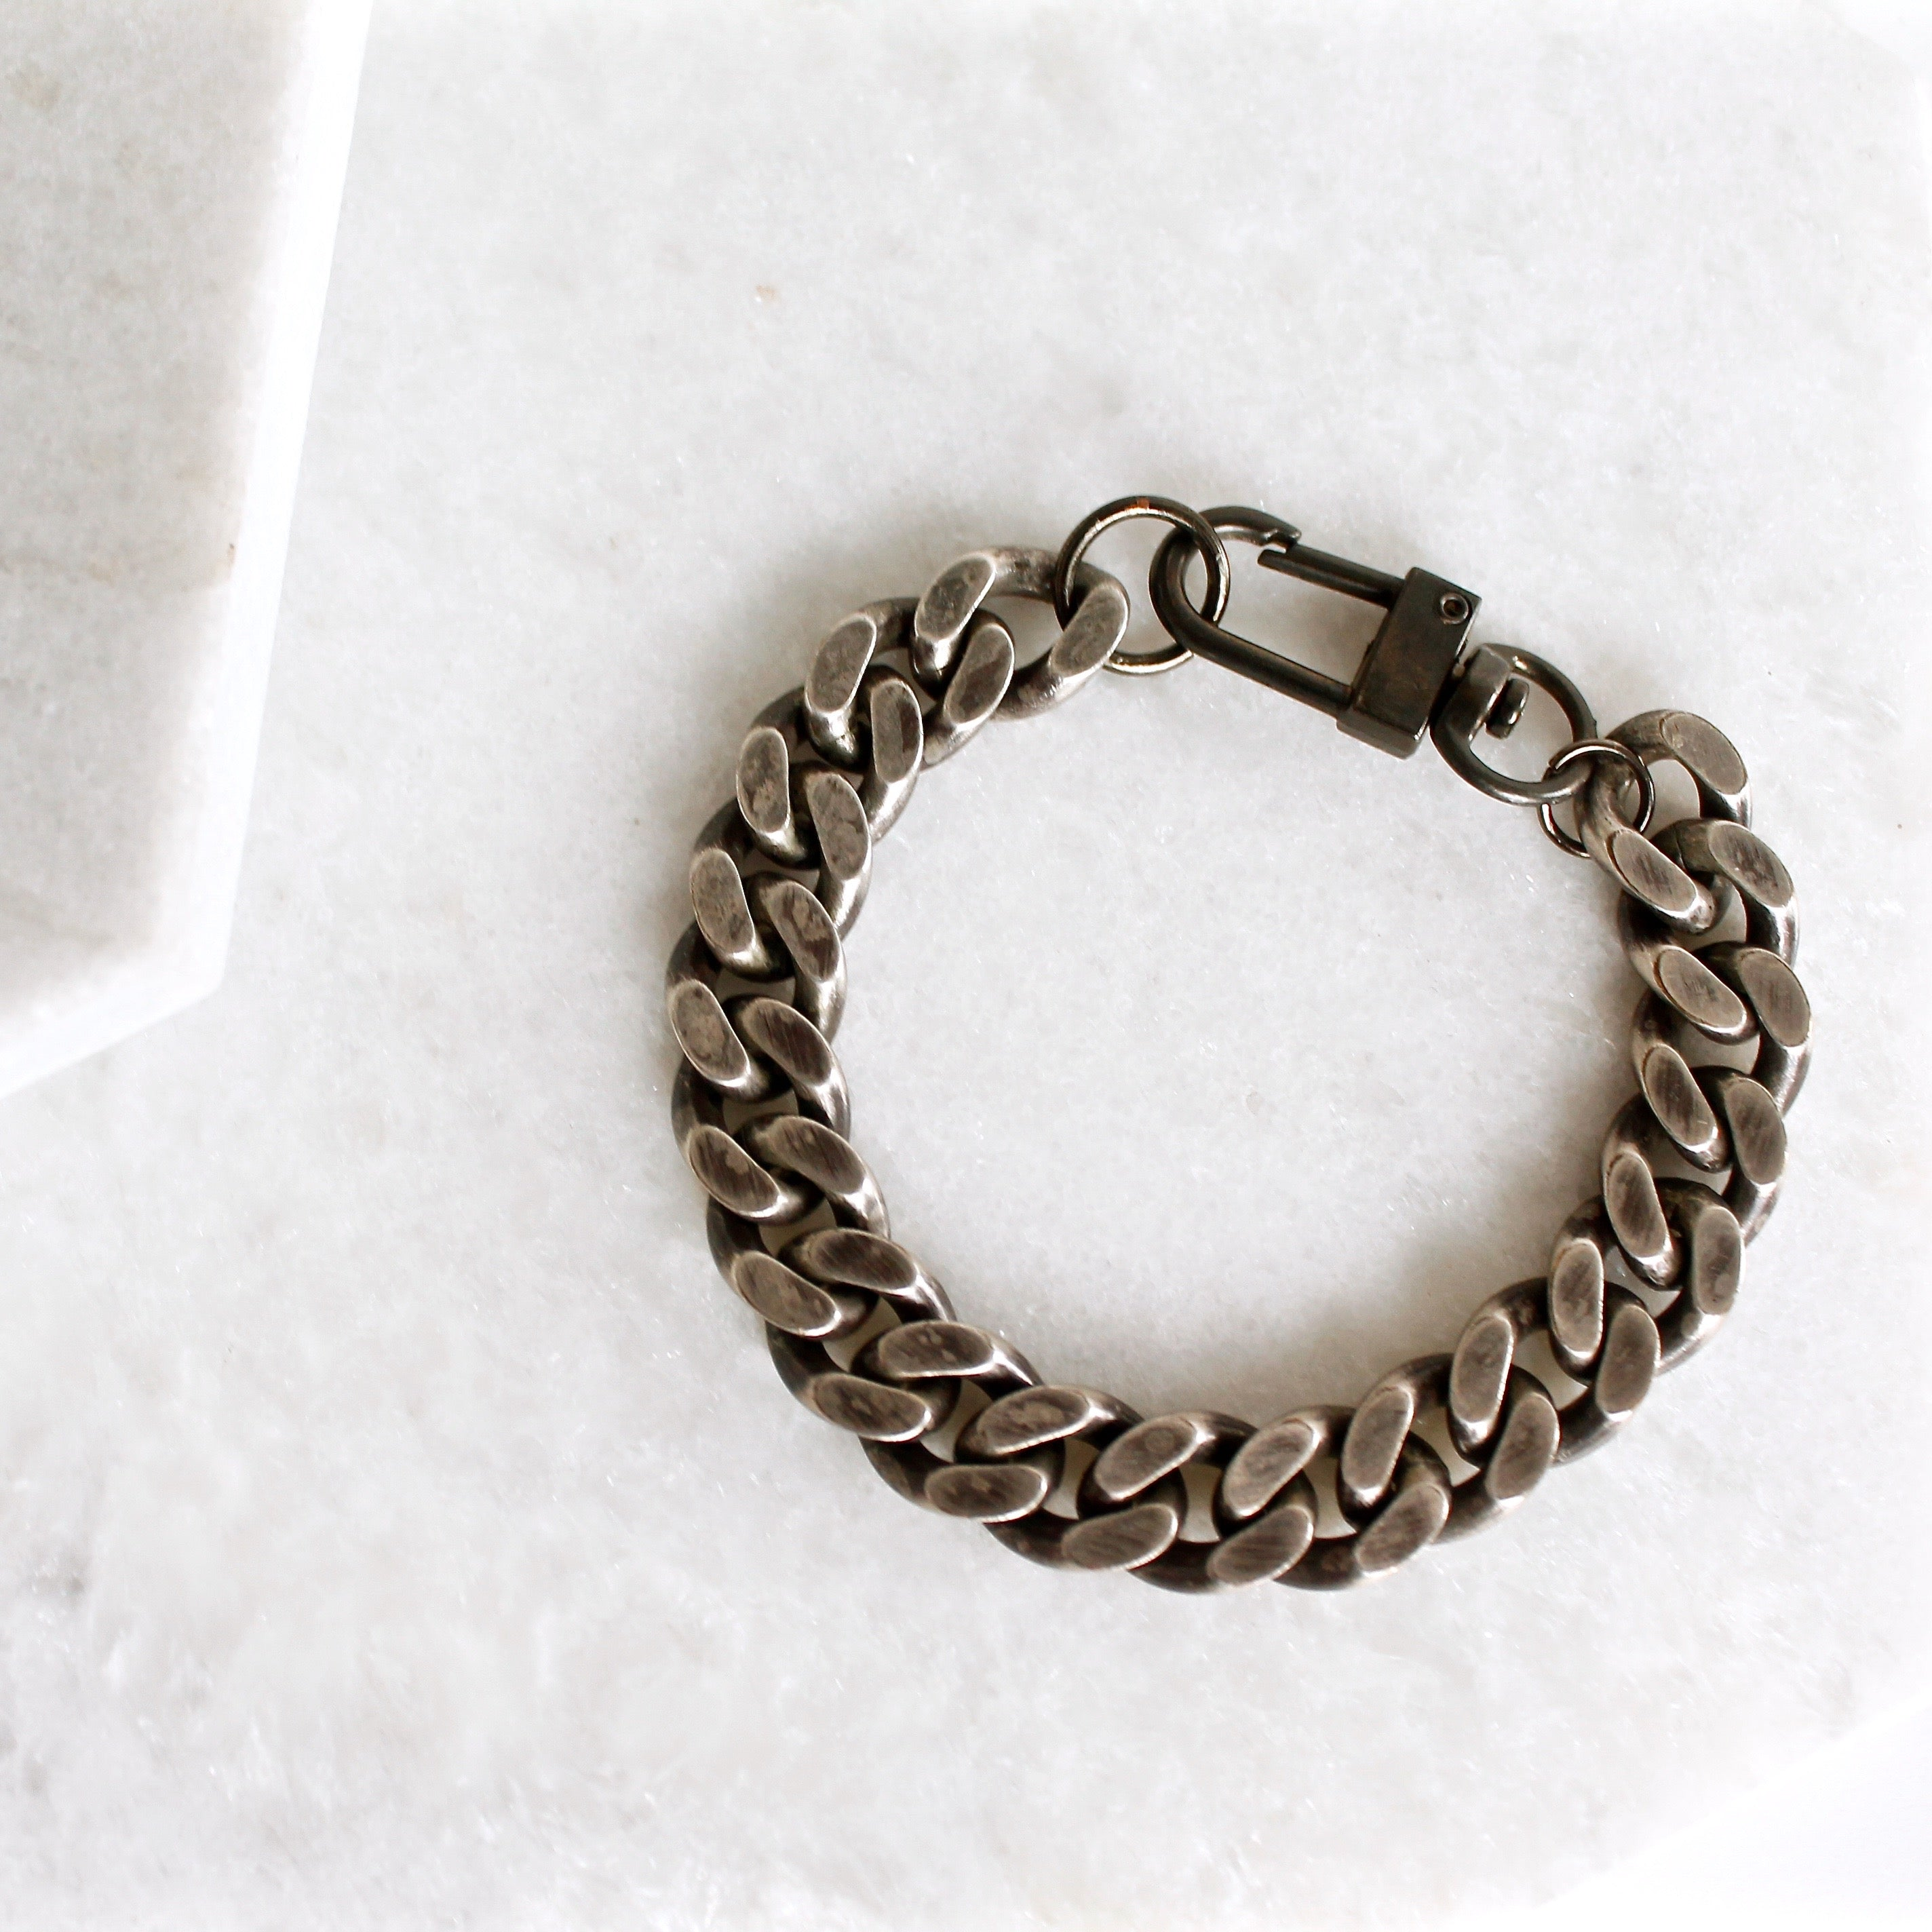 ebay bracelet silver links long thick itm with chain or gold